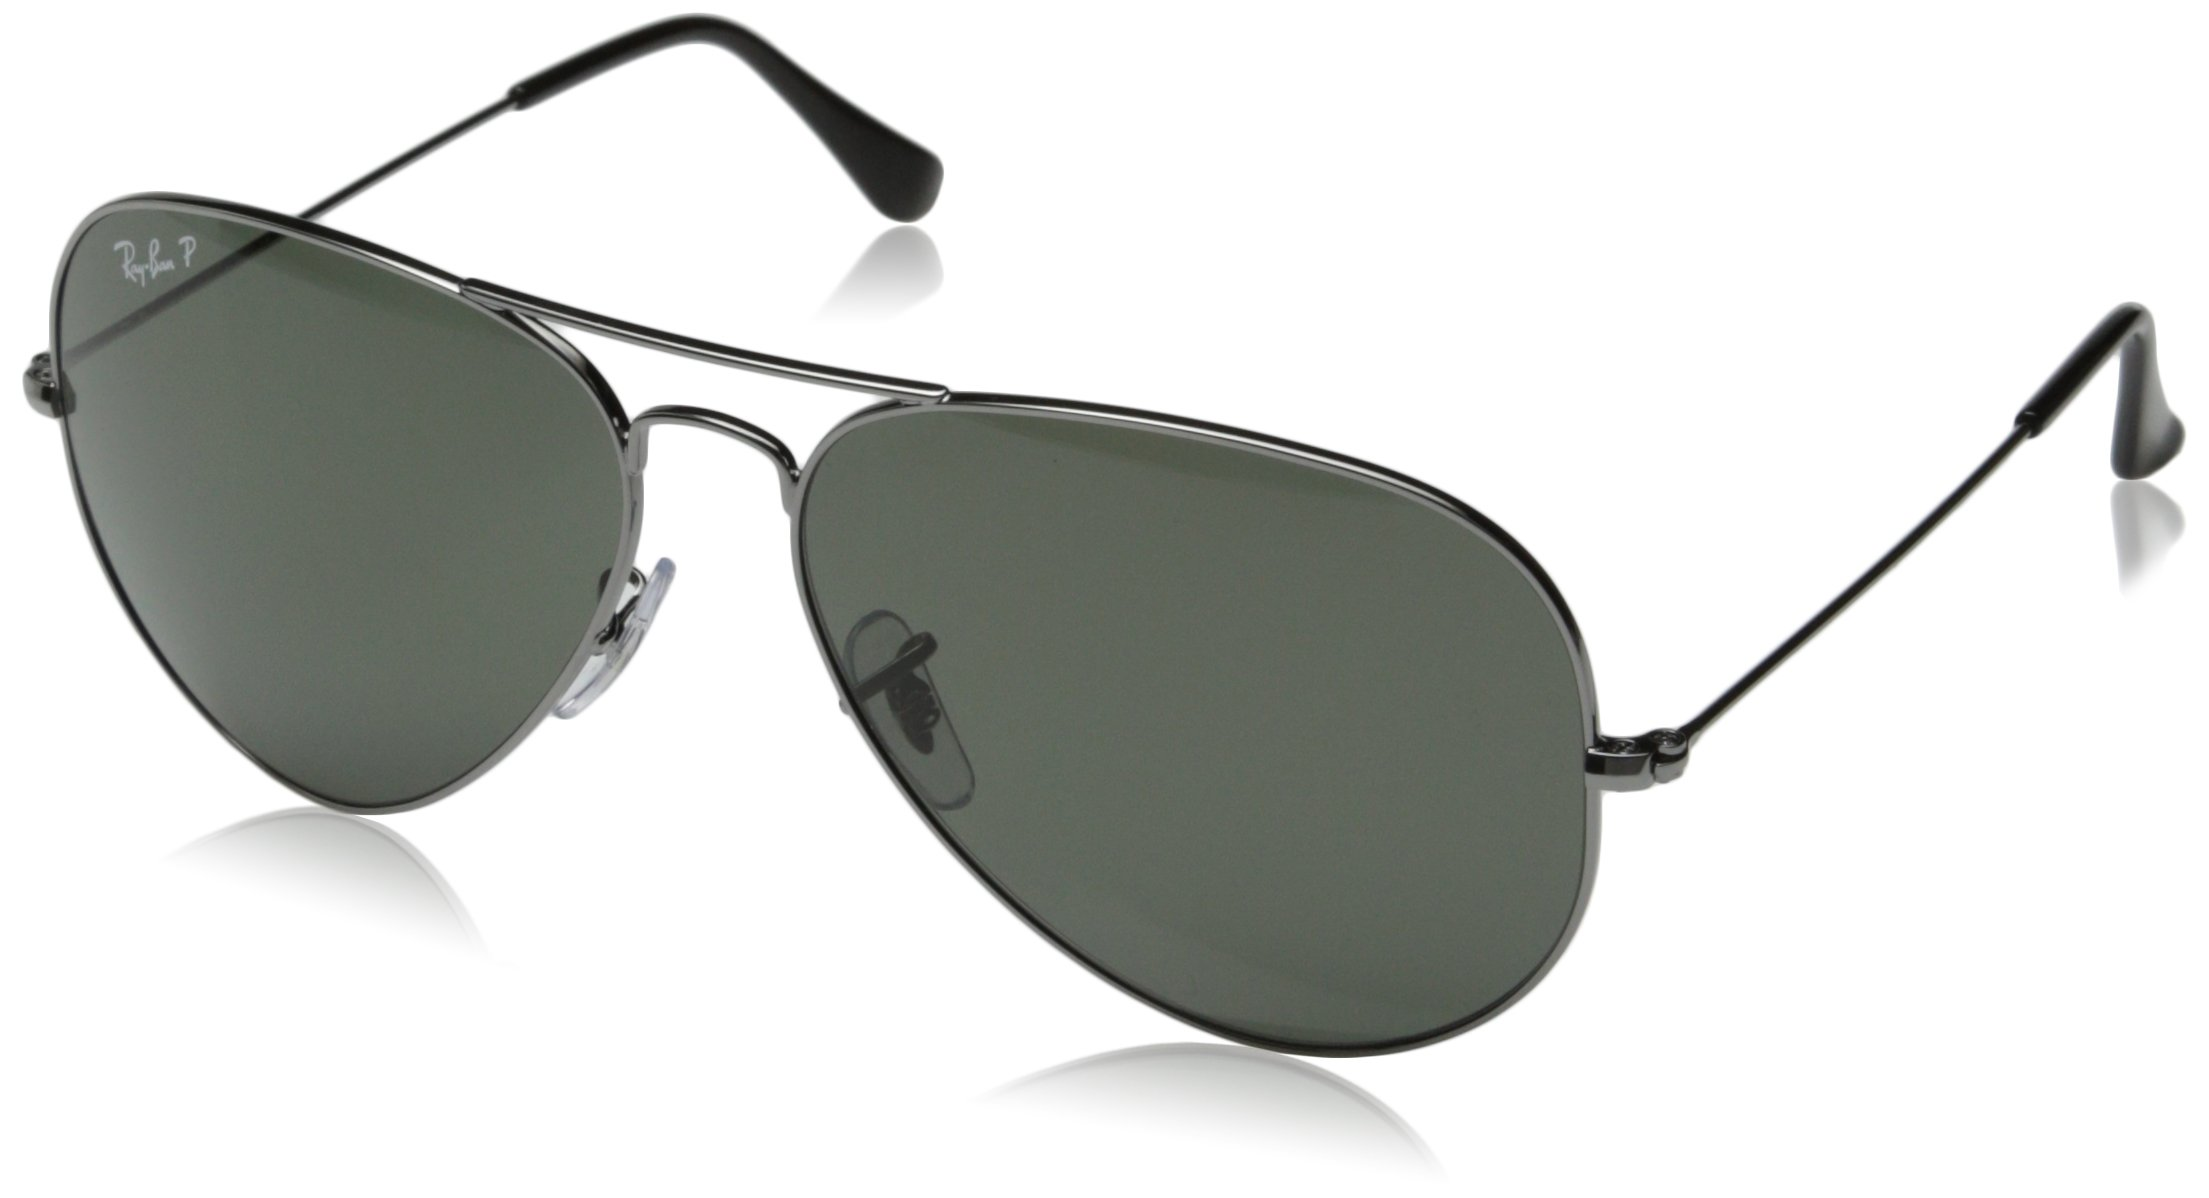 Ray-Ban AVIATOR LARGE METAL - GUNMETAL Frame CRYSTAL GREEN POLARIZED Lenses 62mm Polarized